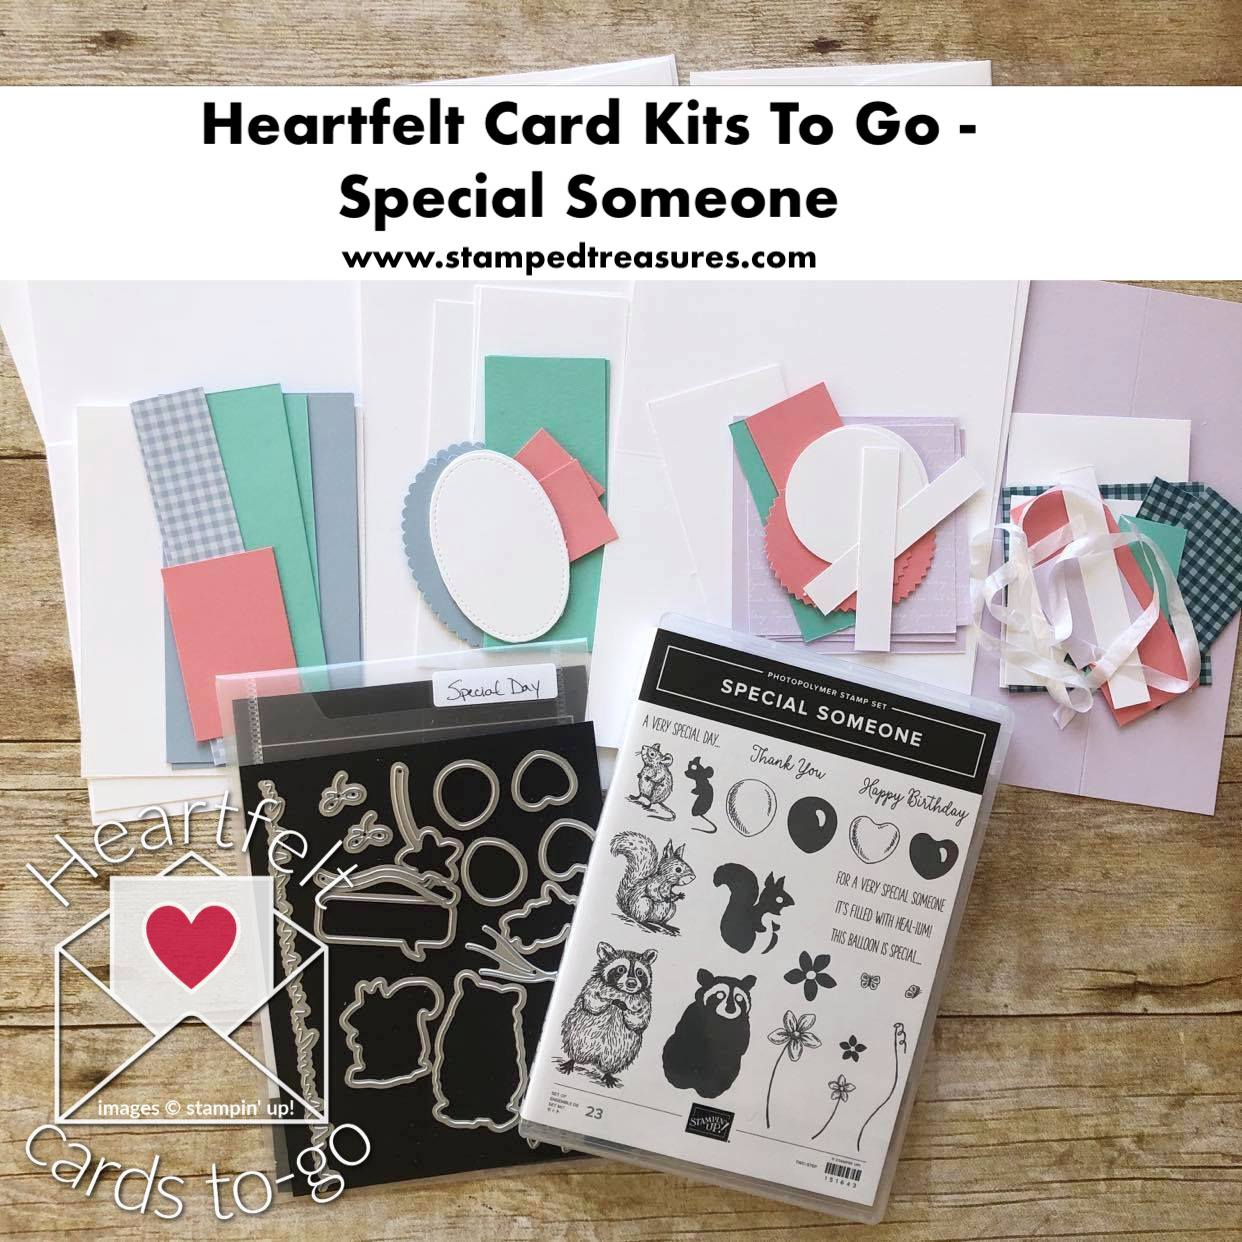 Special Someone Class in the Mail